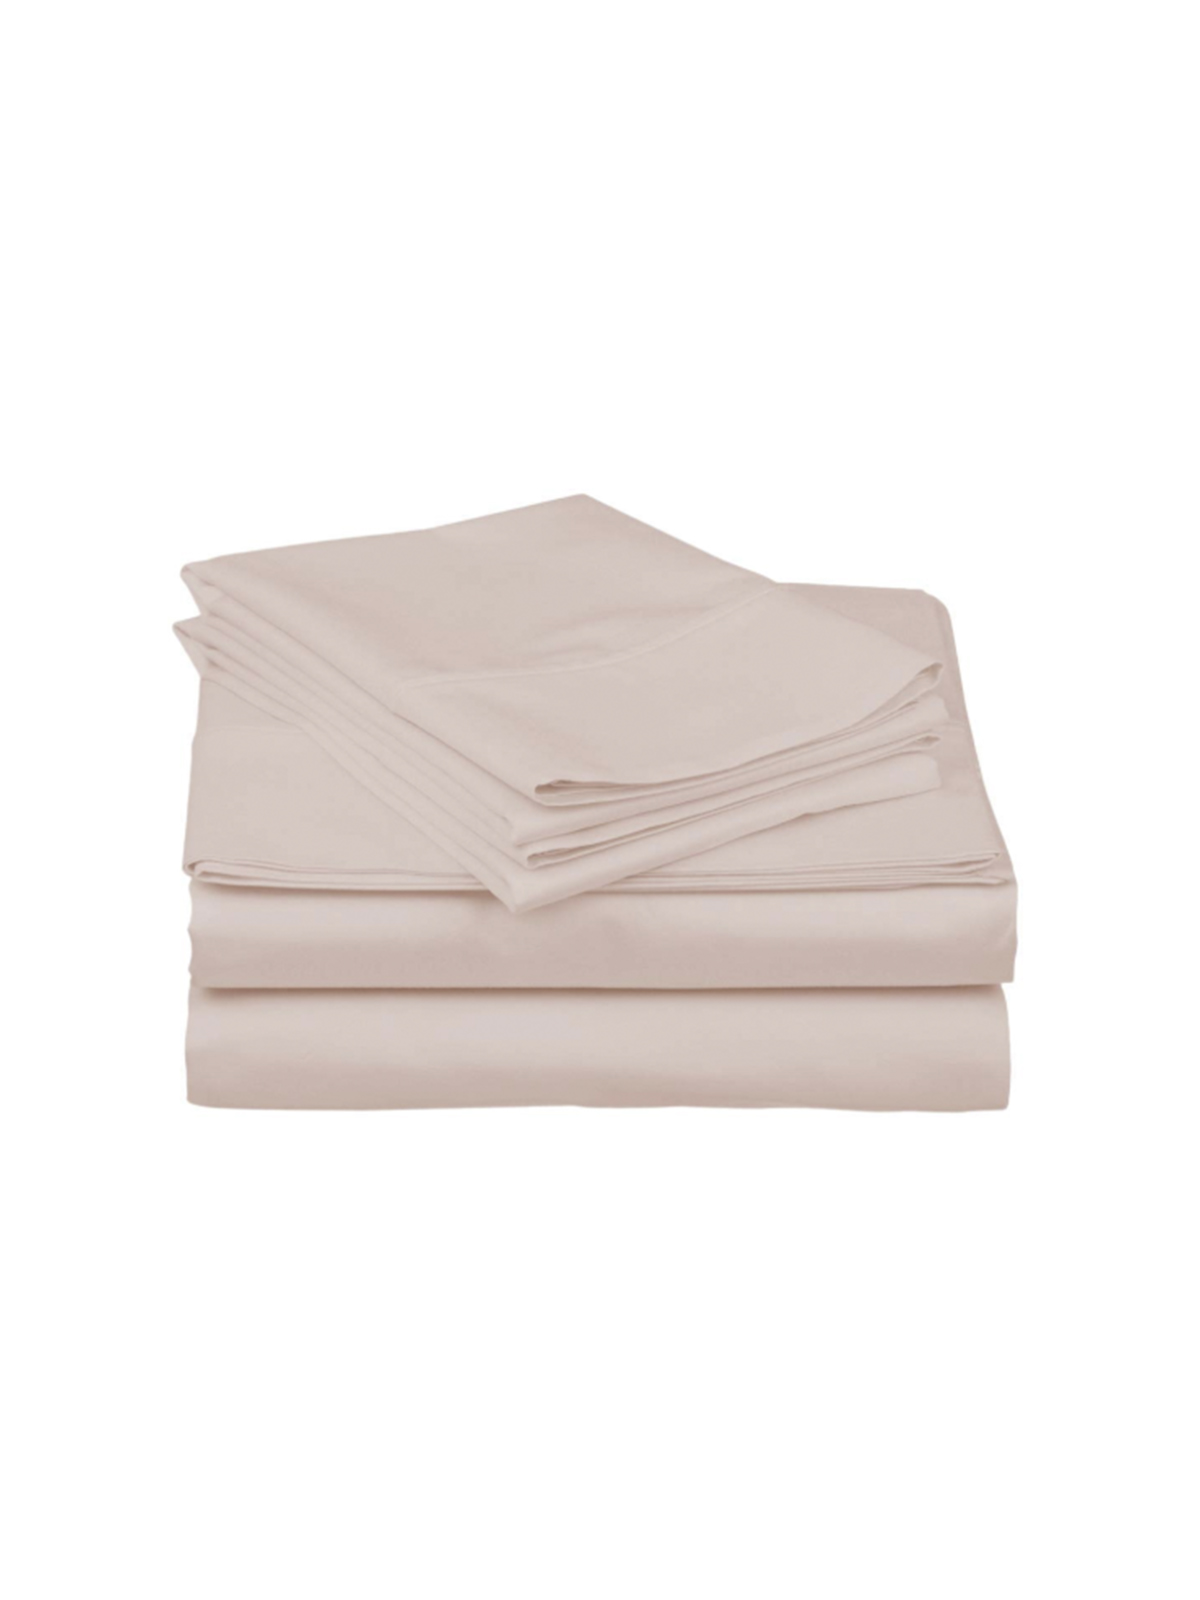 Best amazon bed sheets, thread spread